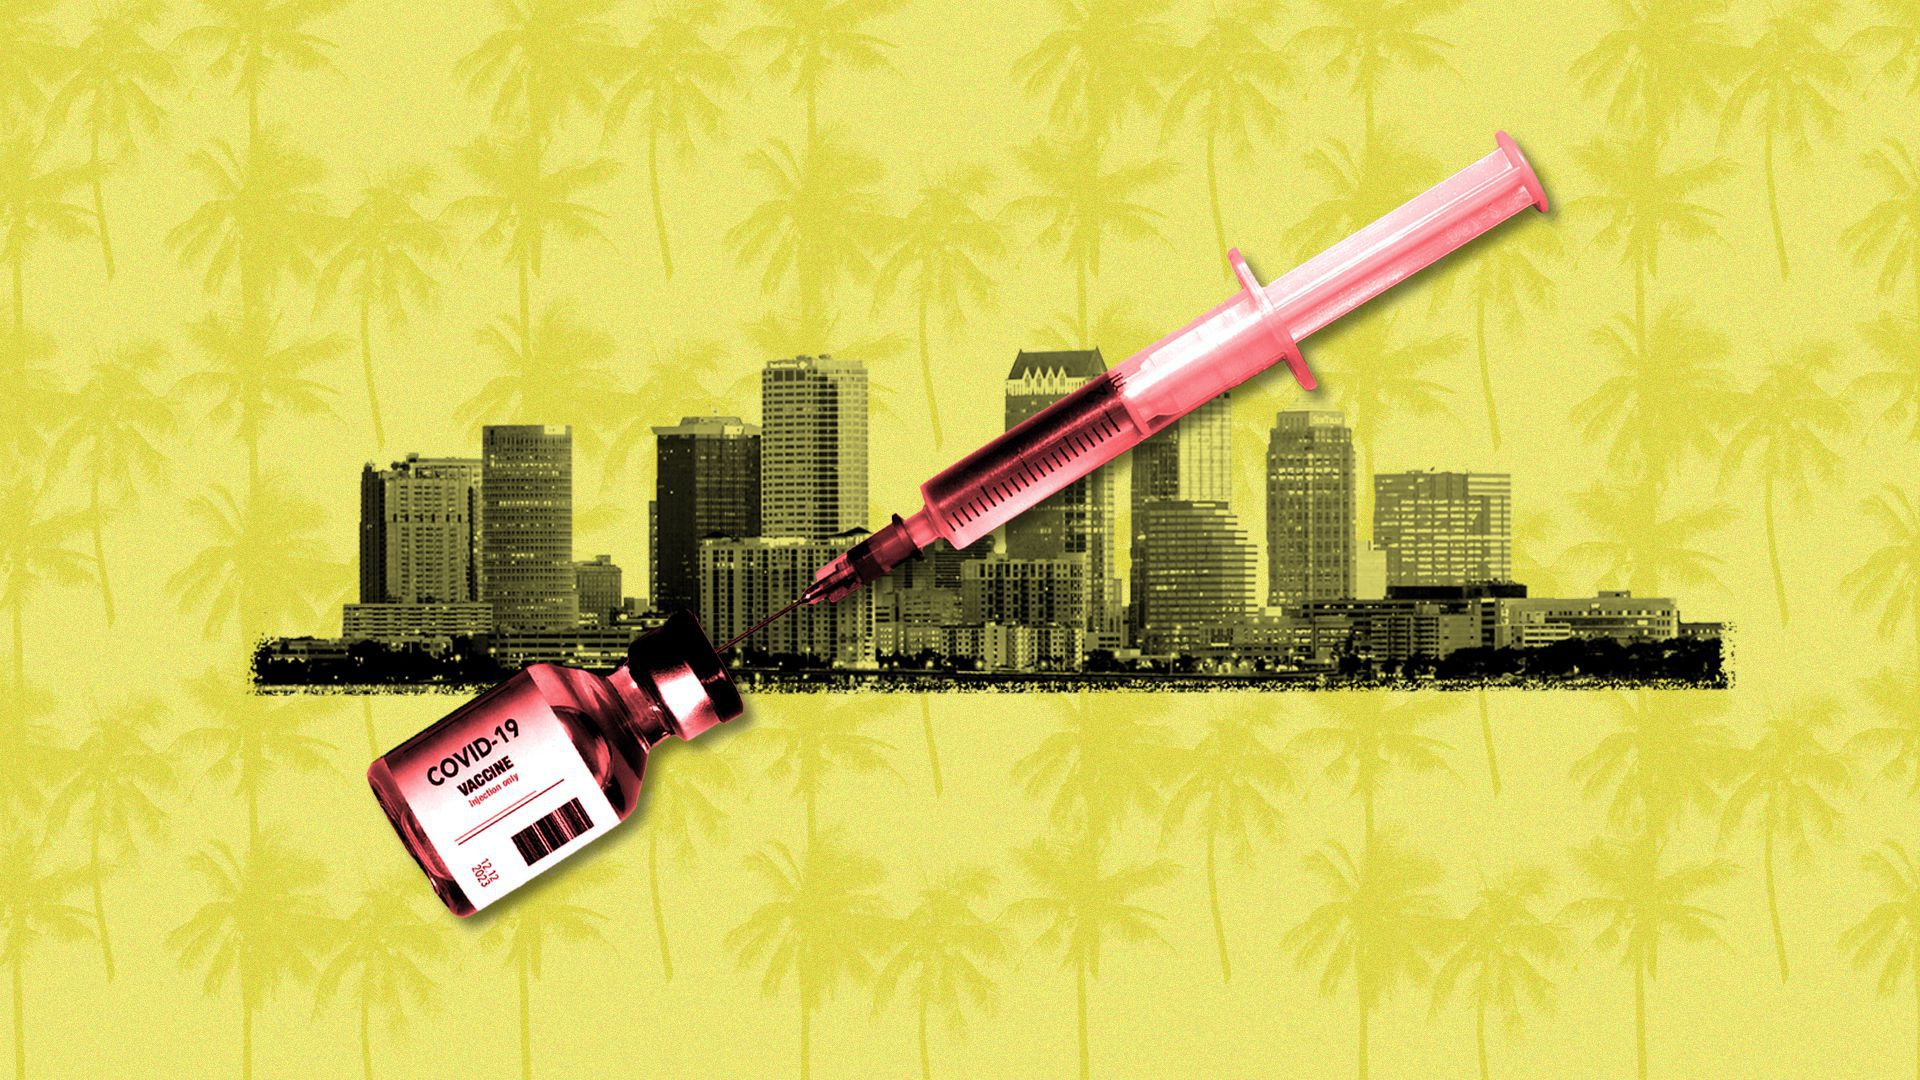 Illustration of the coronavirus vaccine and the Tampa skyline, over a pattern of palm trees.